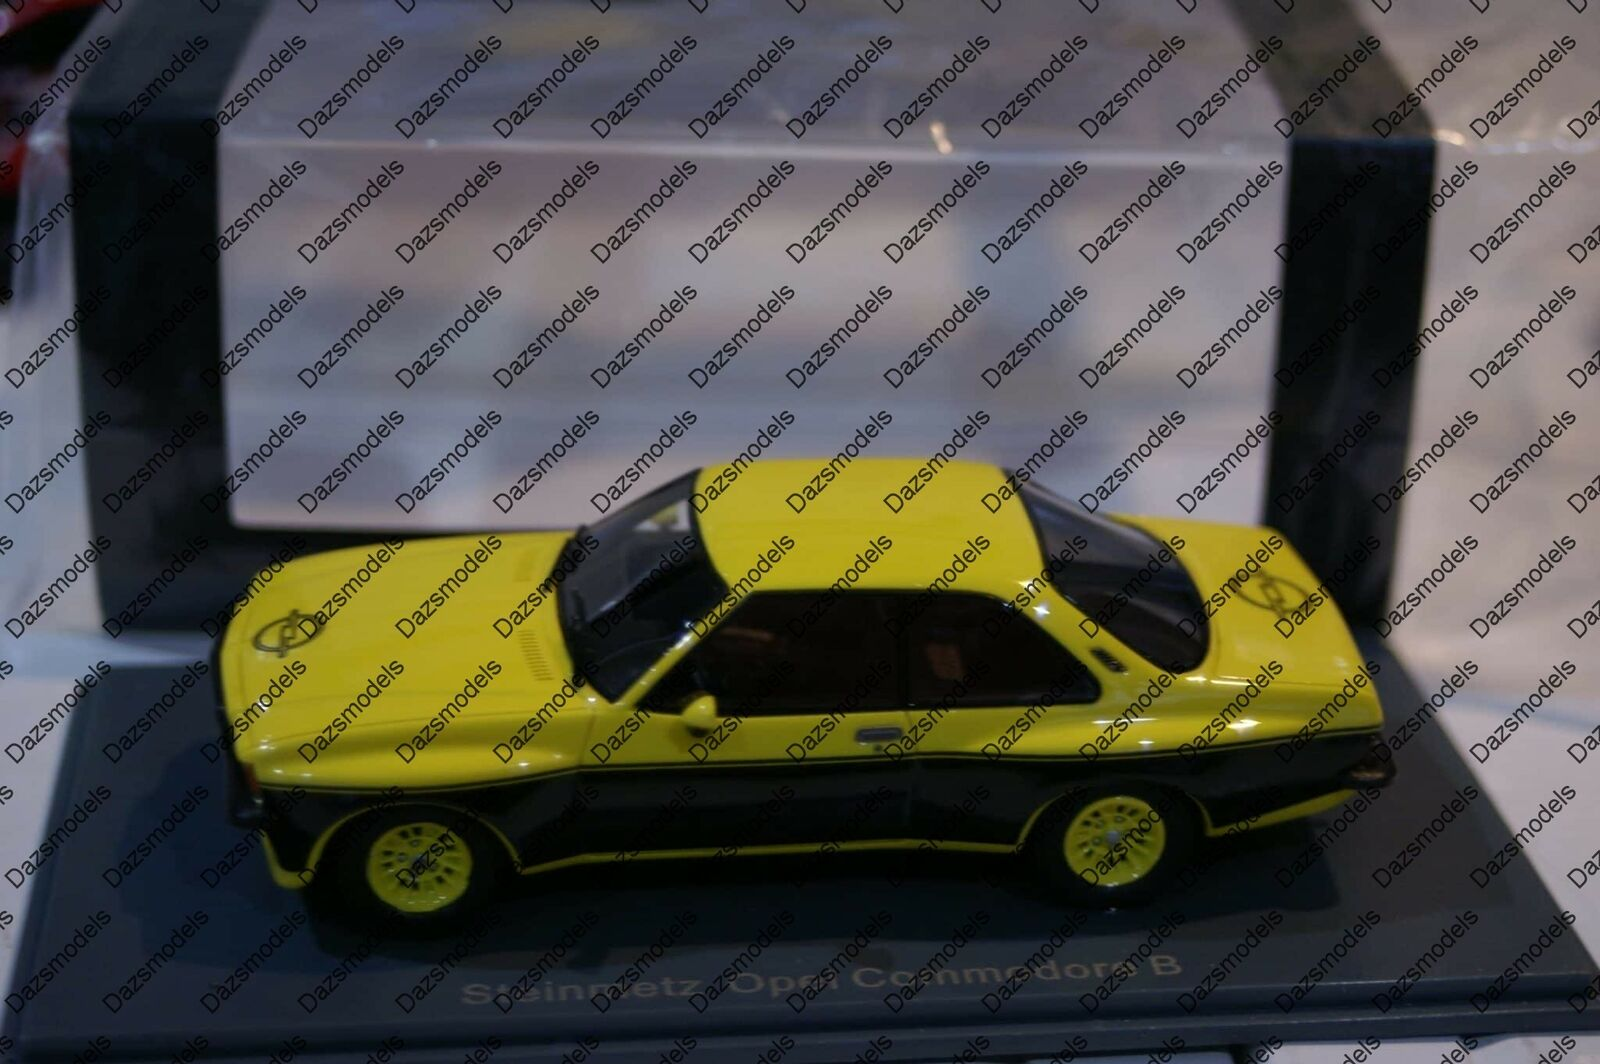 Neo Opel Commodore Steinmetz B 1974 in 1 43 scale Neo46115 Resin